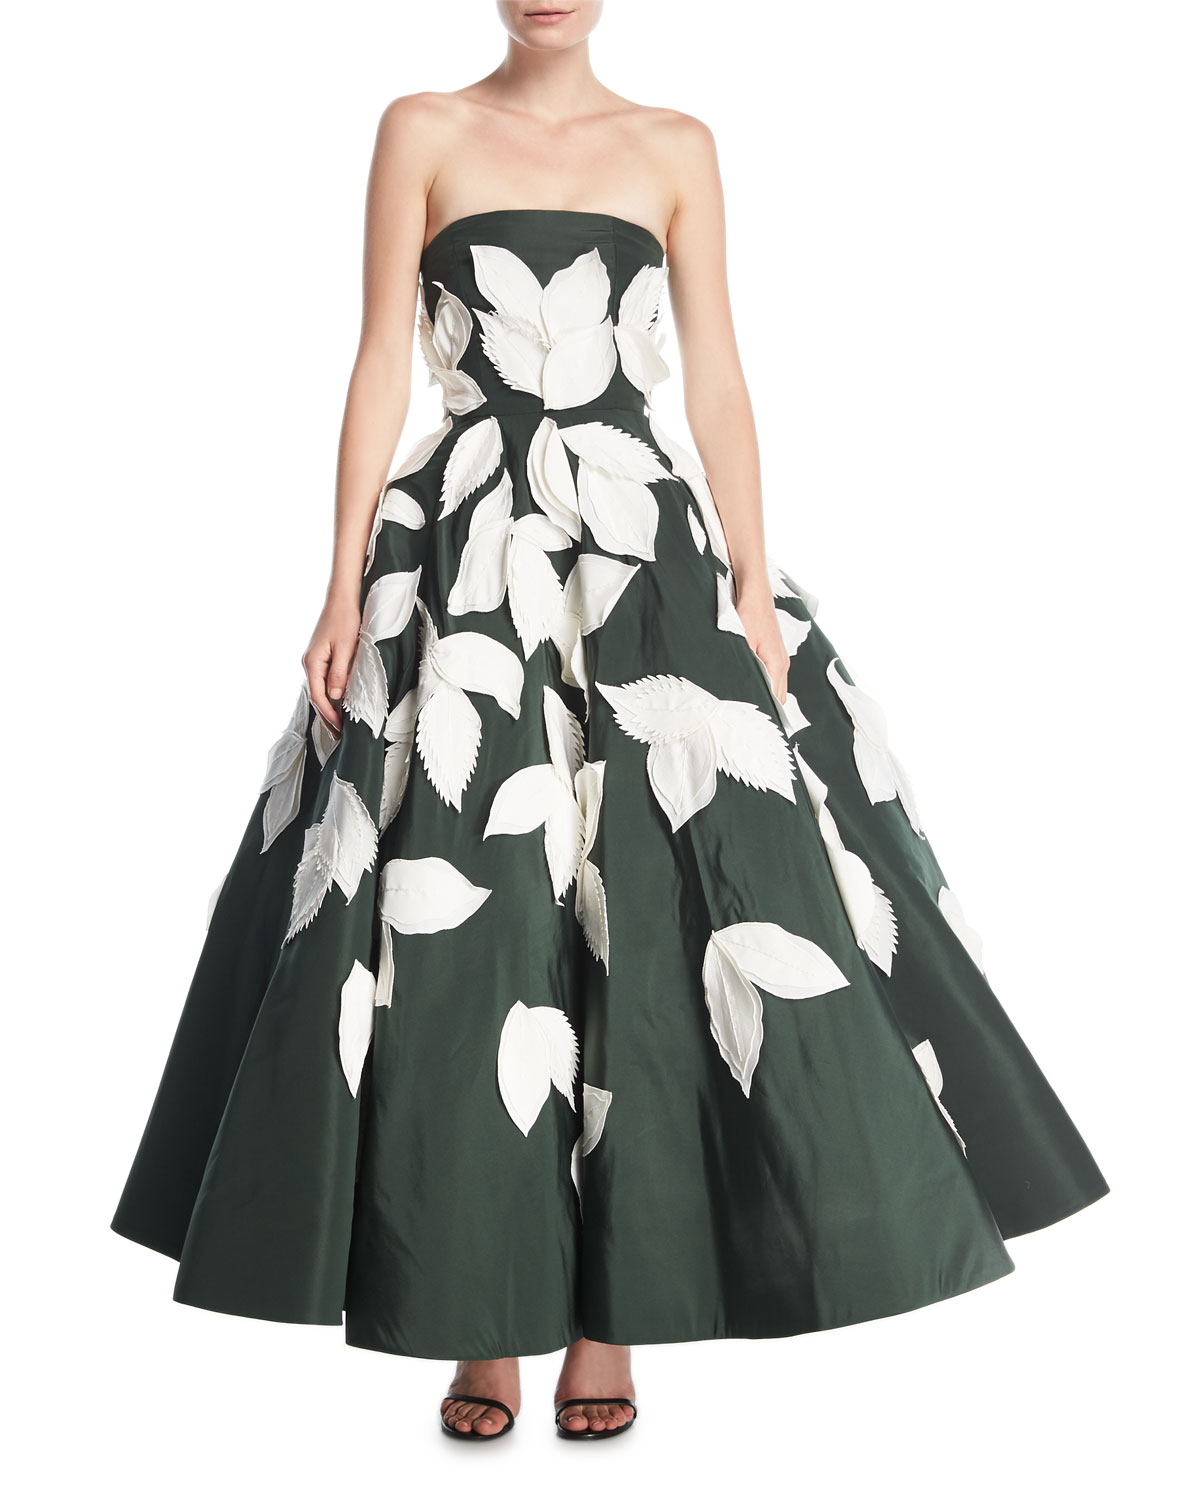 Oscar De La Renta Strapless Full Skirt Evening Gown With Floral